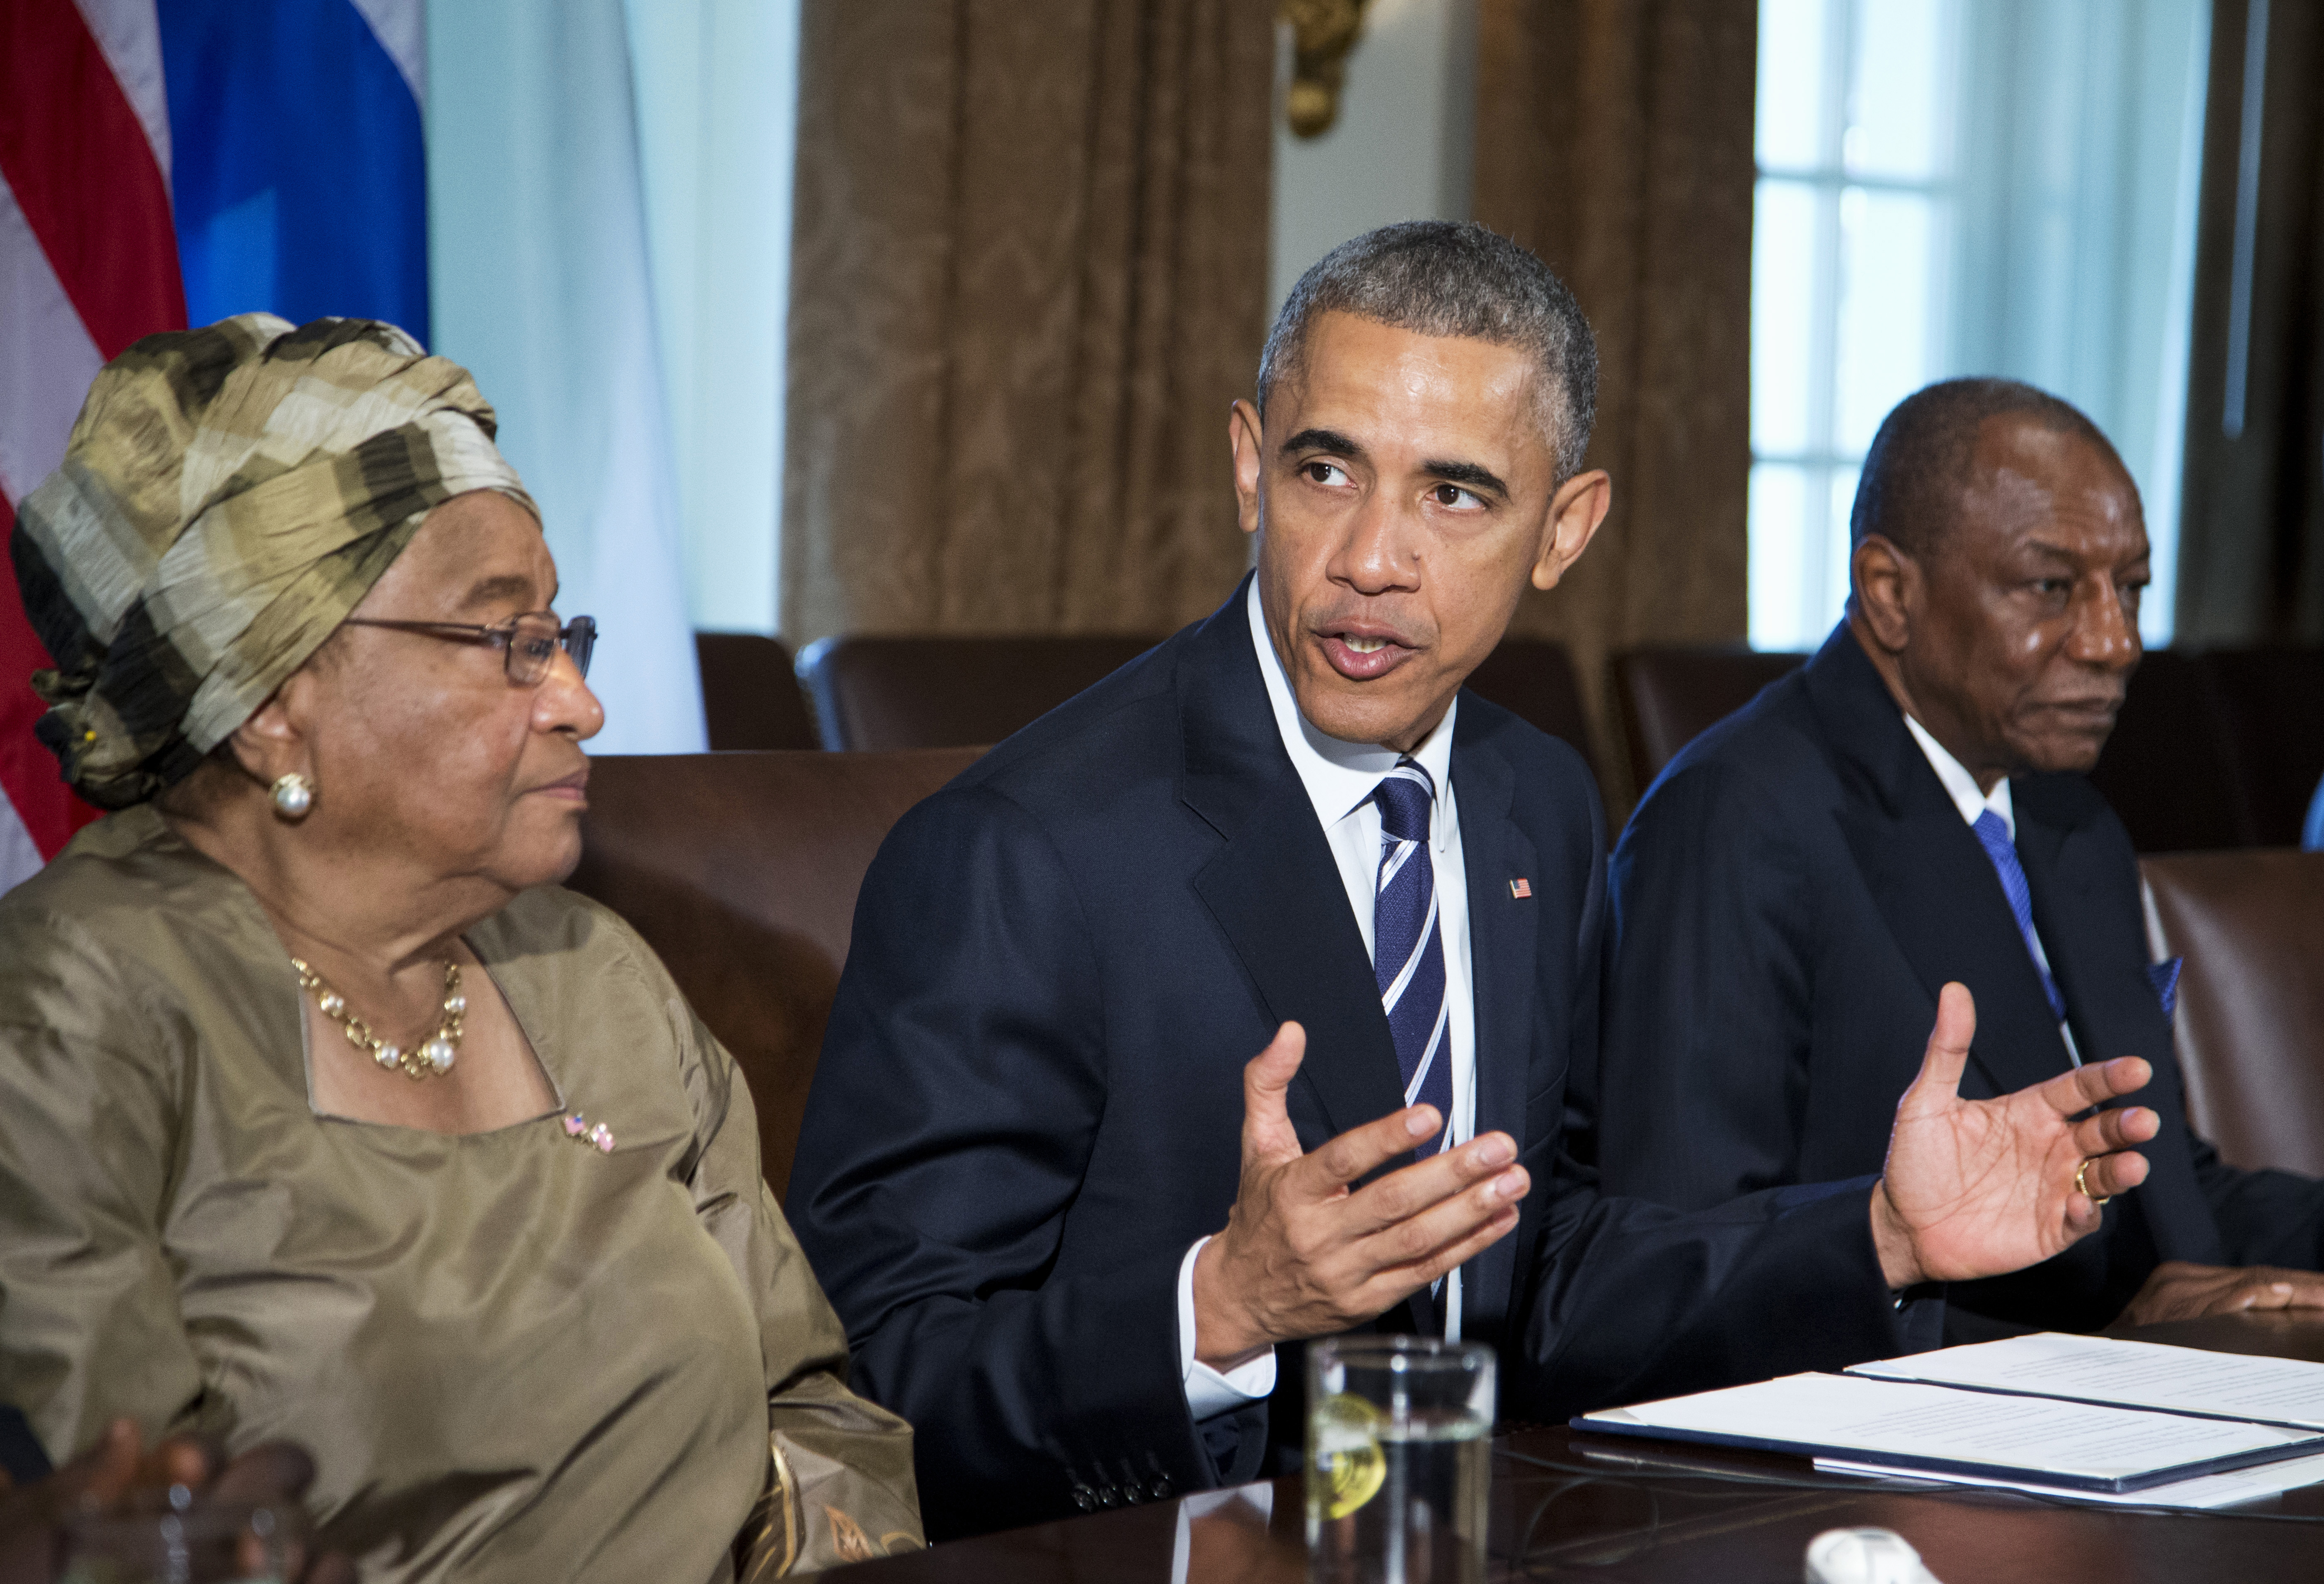 President Barack Obama, flanked by Liberian President Ellen Johnson Sirleaf, left, and Guinean President Alpha Condé, speaks in the Cabinet Room of the White House in Washington, Wednesday, April 15, 2015, to discuss the progress made in the international Ebola response.